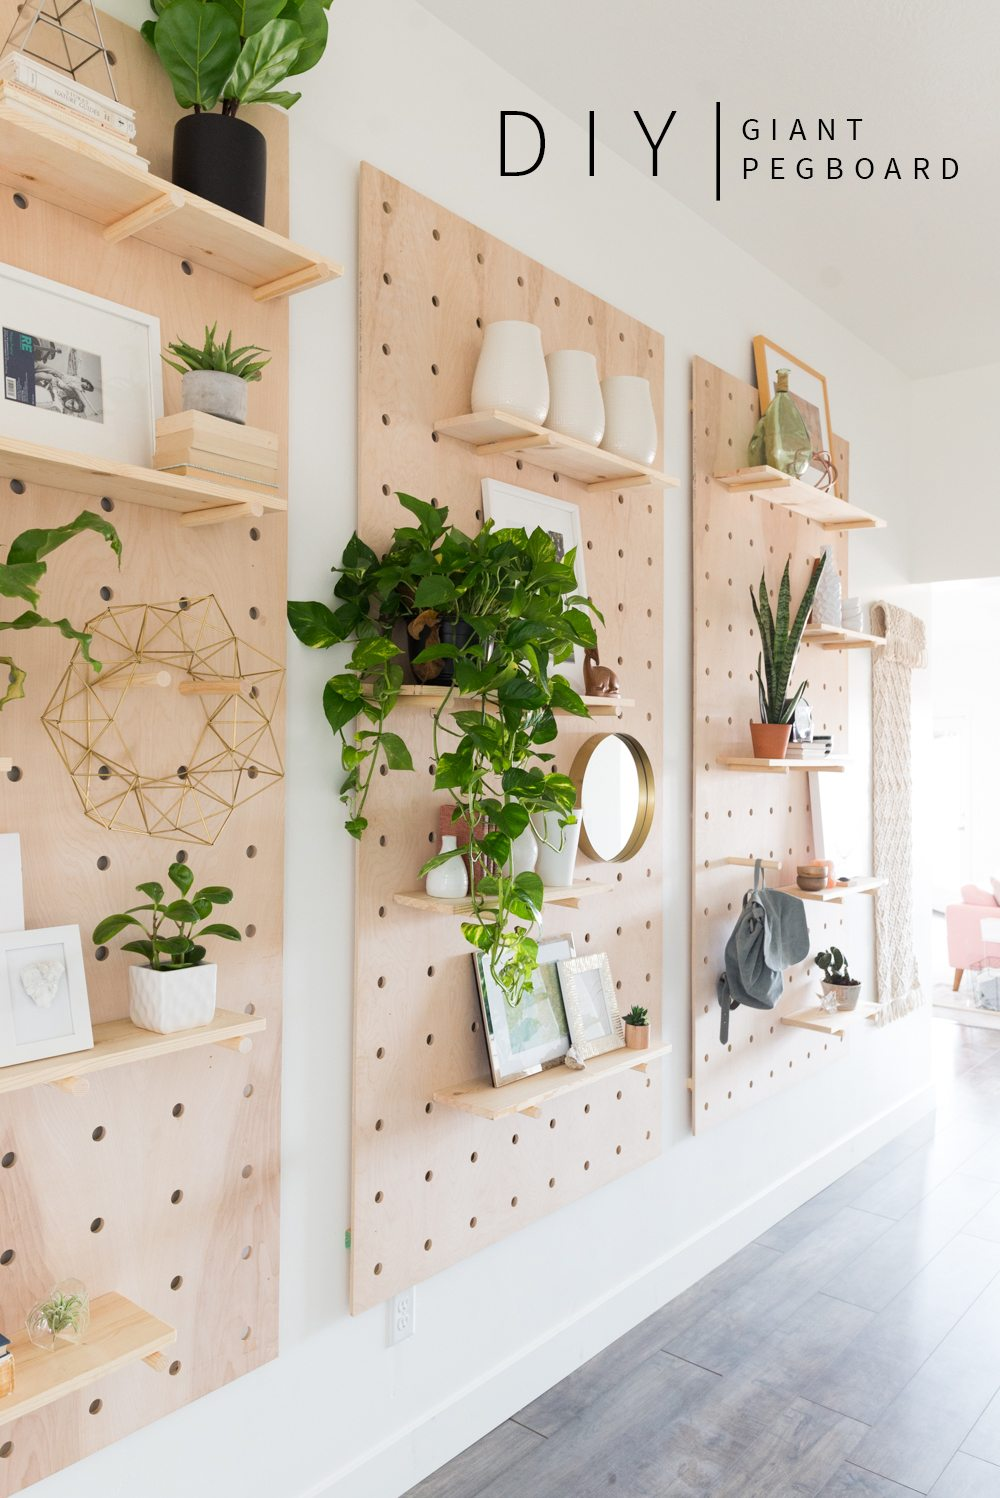 Do It Yourself Home Design: Giant Pegboard DIY!